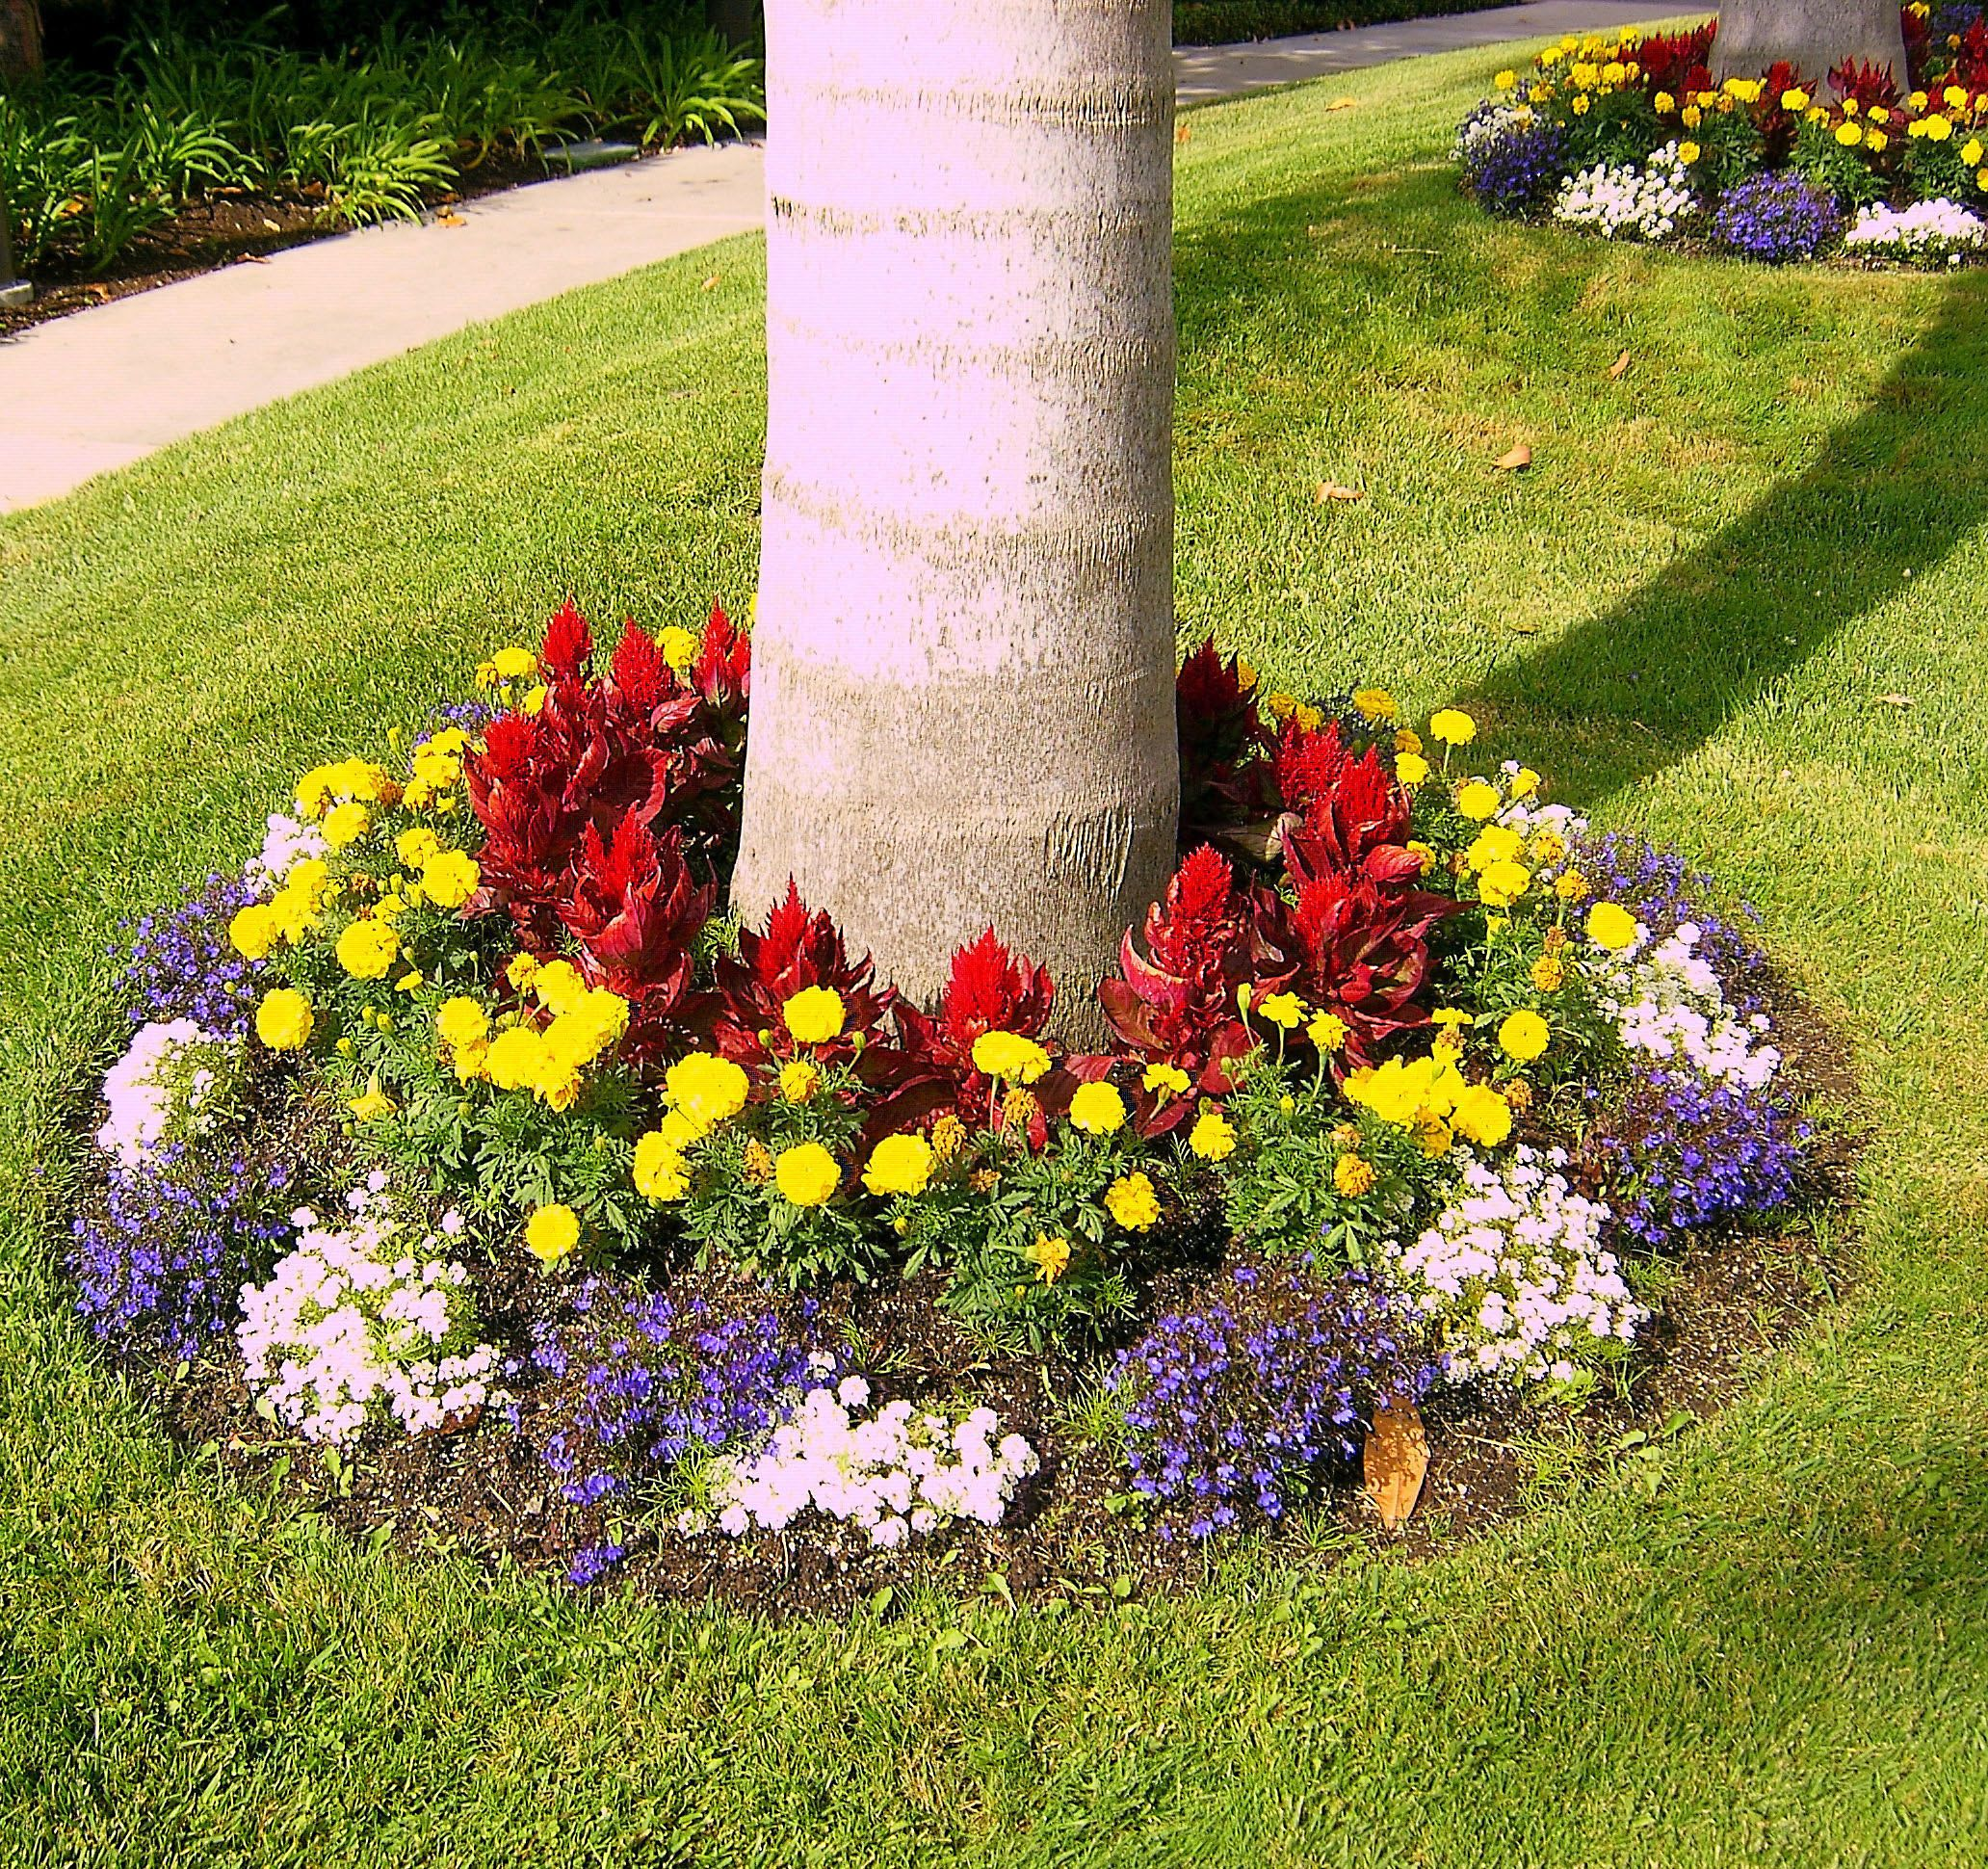 Flower Garden Landscape Of Colorful Landscaping Colorful Tree Base Landscaping